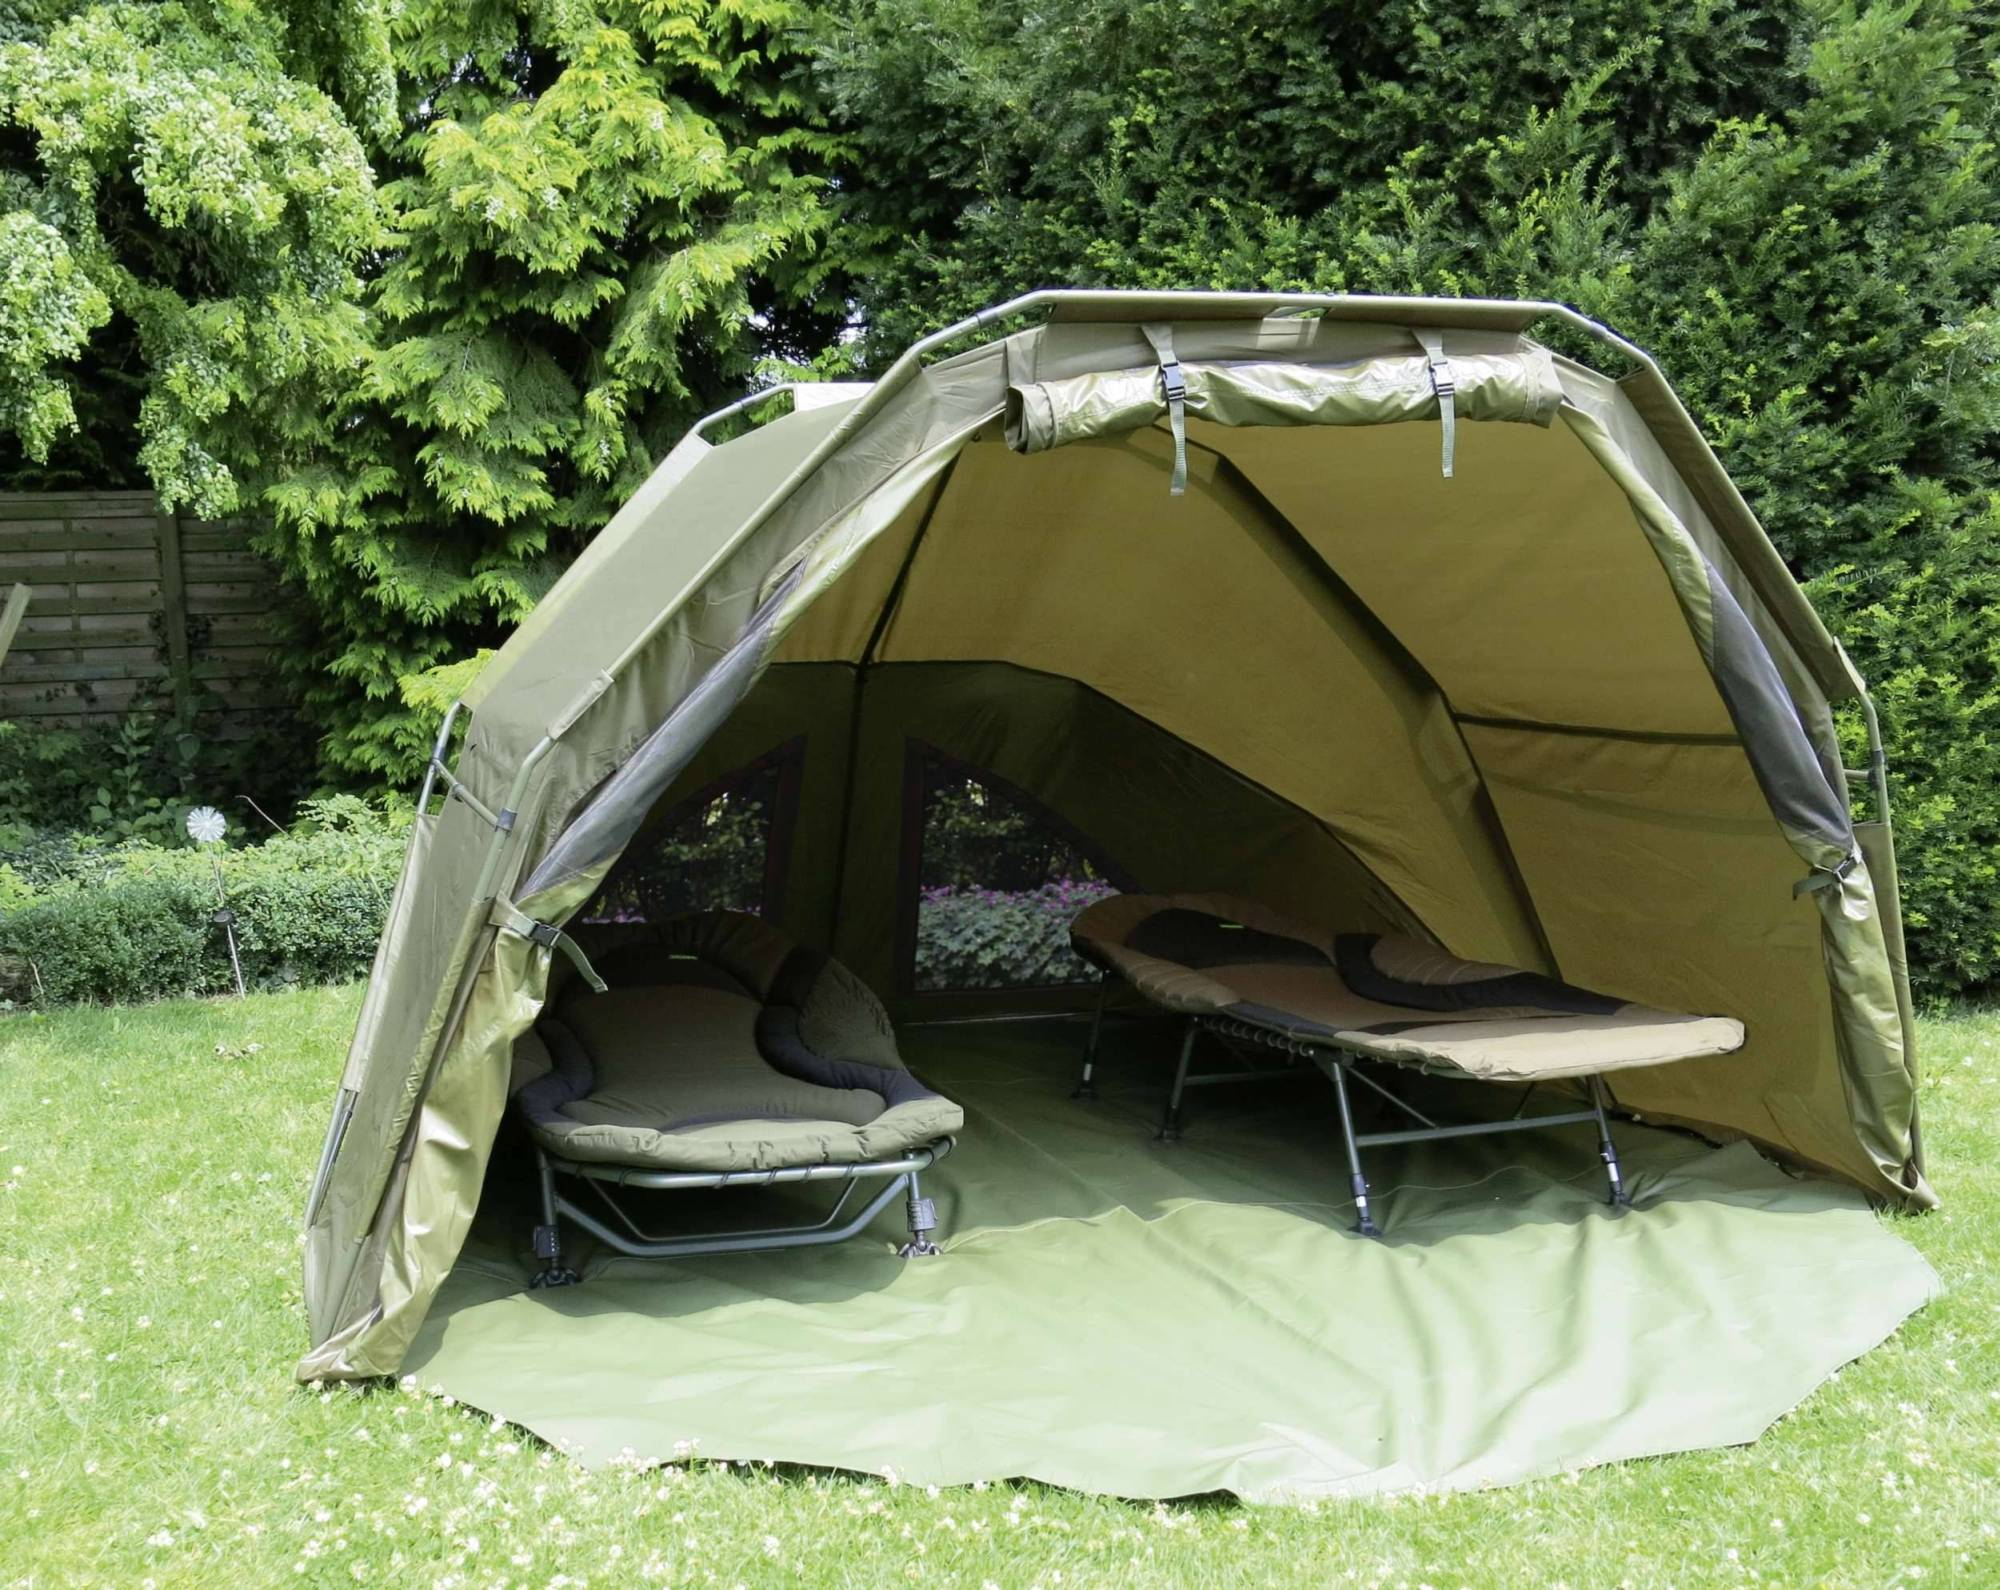 All PELZER carp tents are supplied in a sturdy nylon carrying bag. Material 100% Nylon & Pelzer Portal Dome 305 x 385 x 175 cm Fishingtackle24 ...